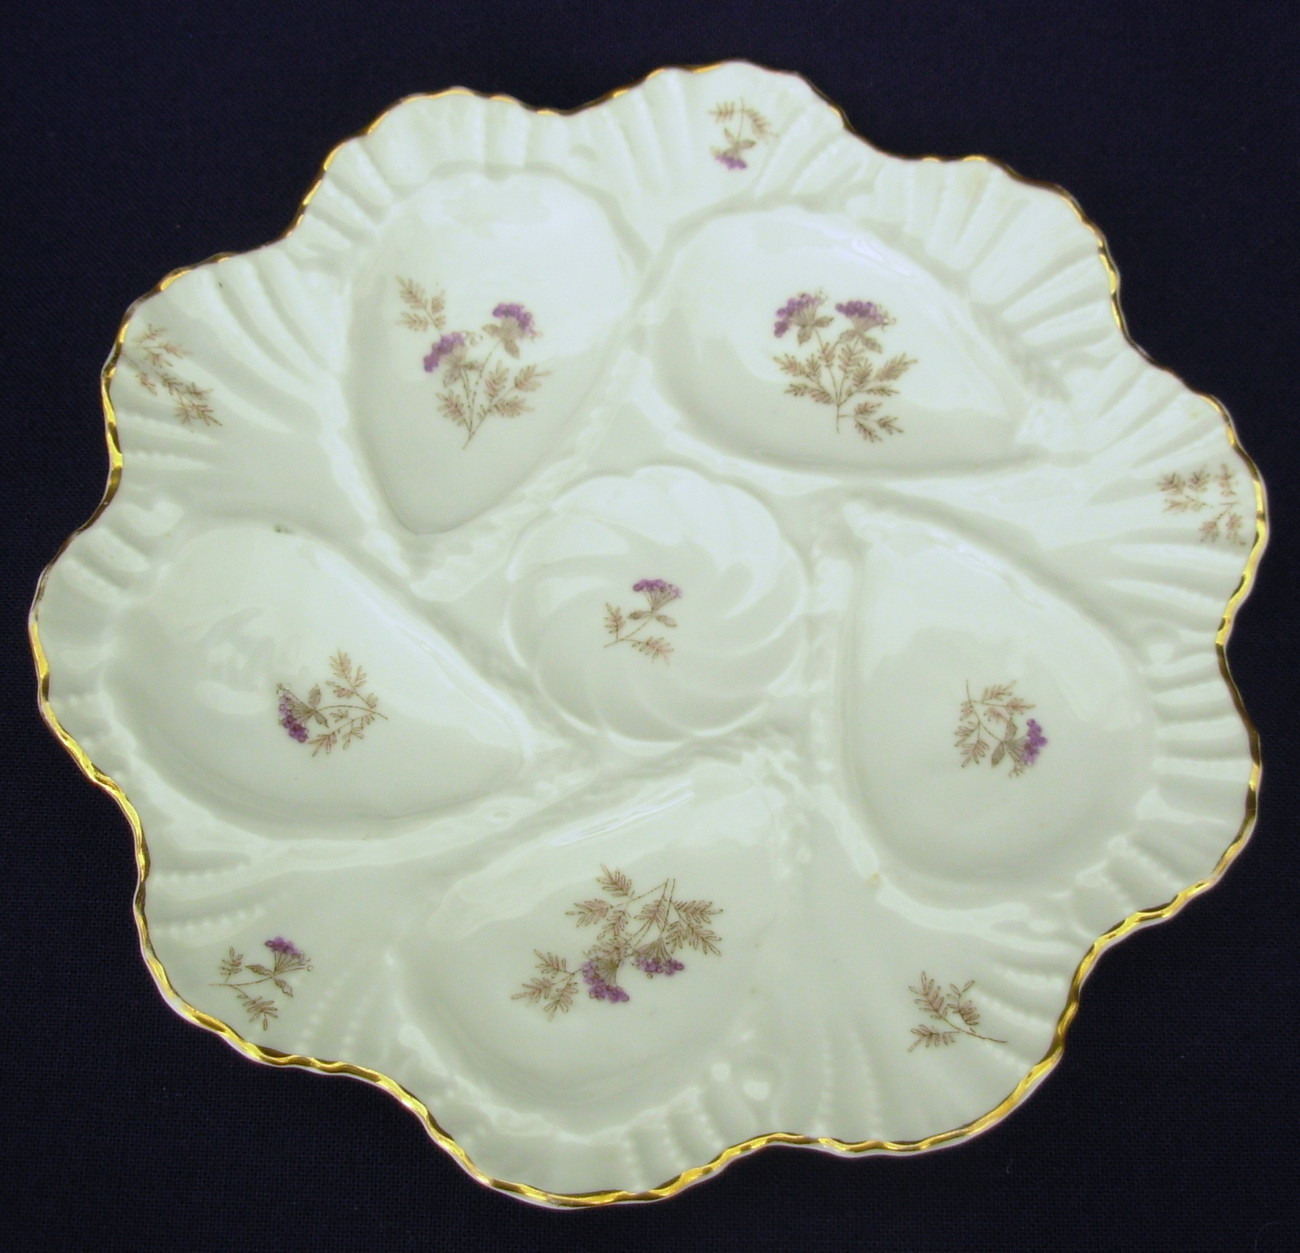 Primary image for antique 5 well porcelain Oyster Plate White Lavender Floral #2